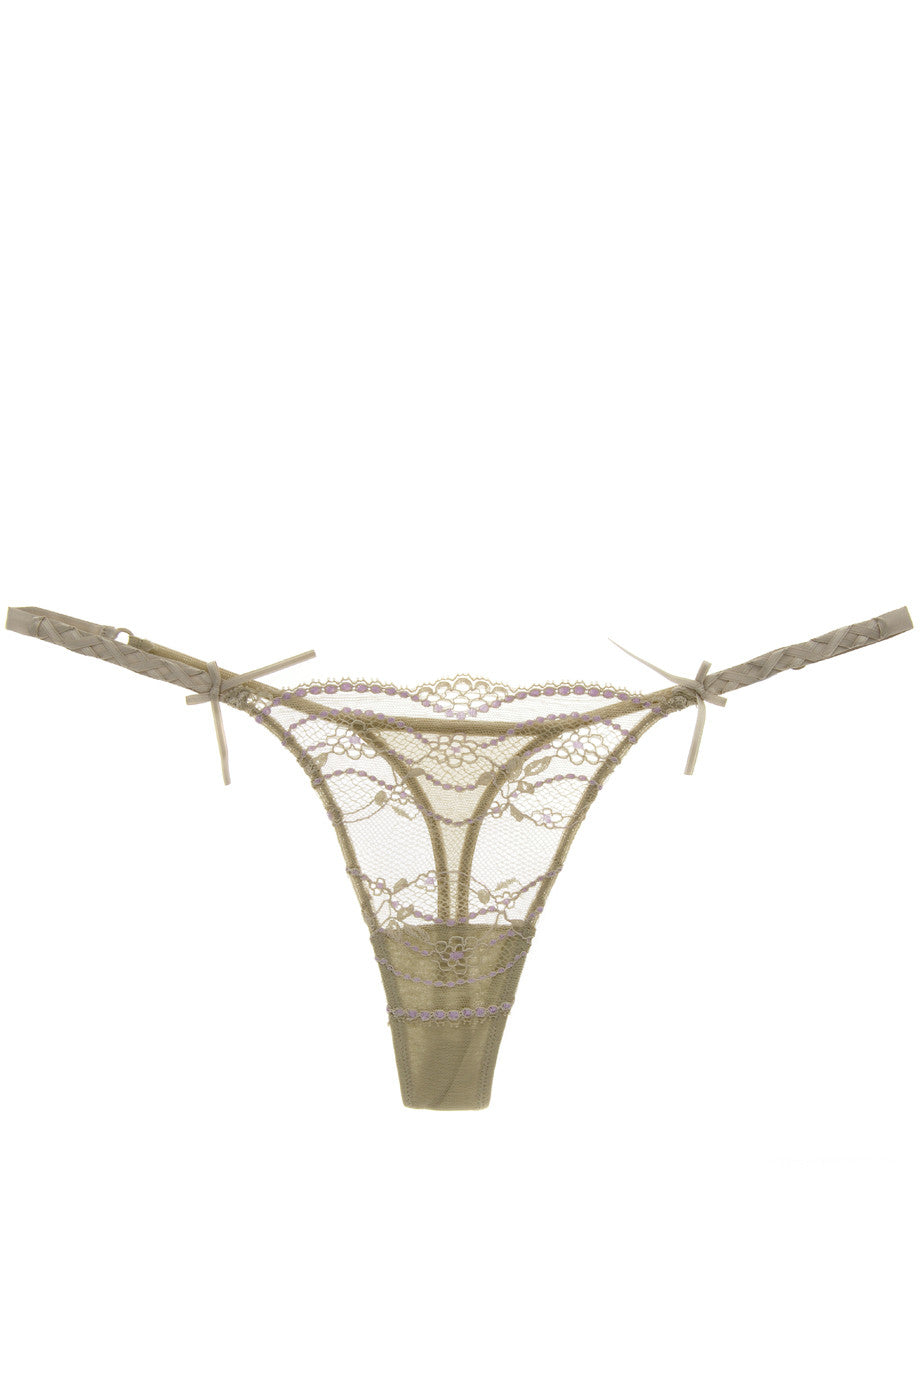 7dfac2154 COTTON CLUB LAVENDER Lace Thong – PRET-A-BEAUTE.COM